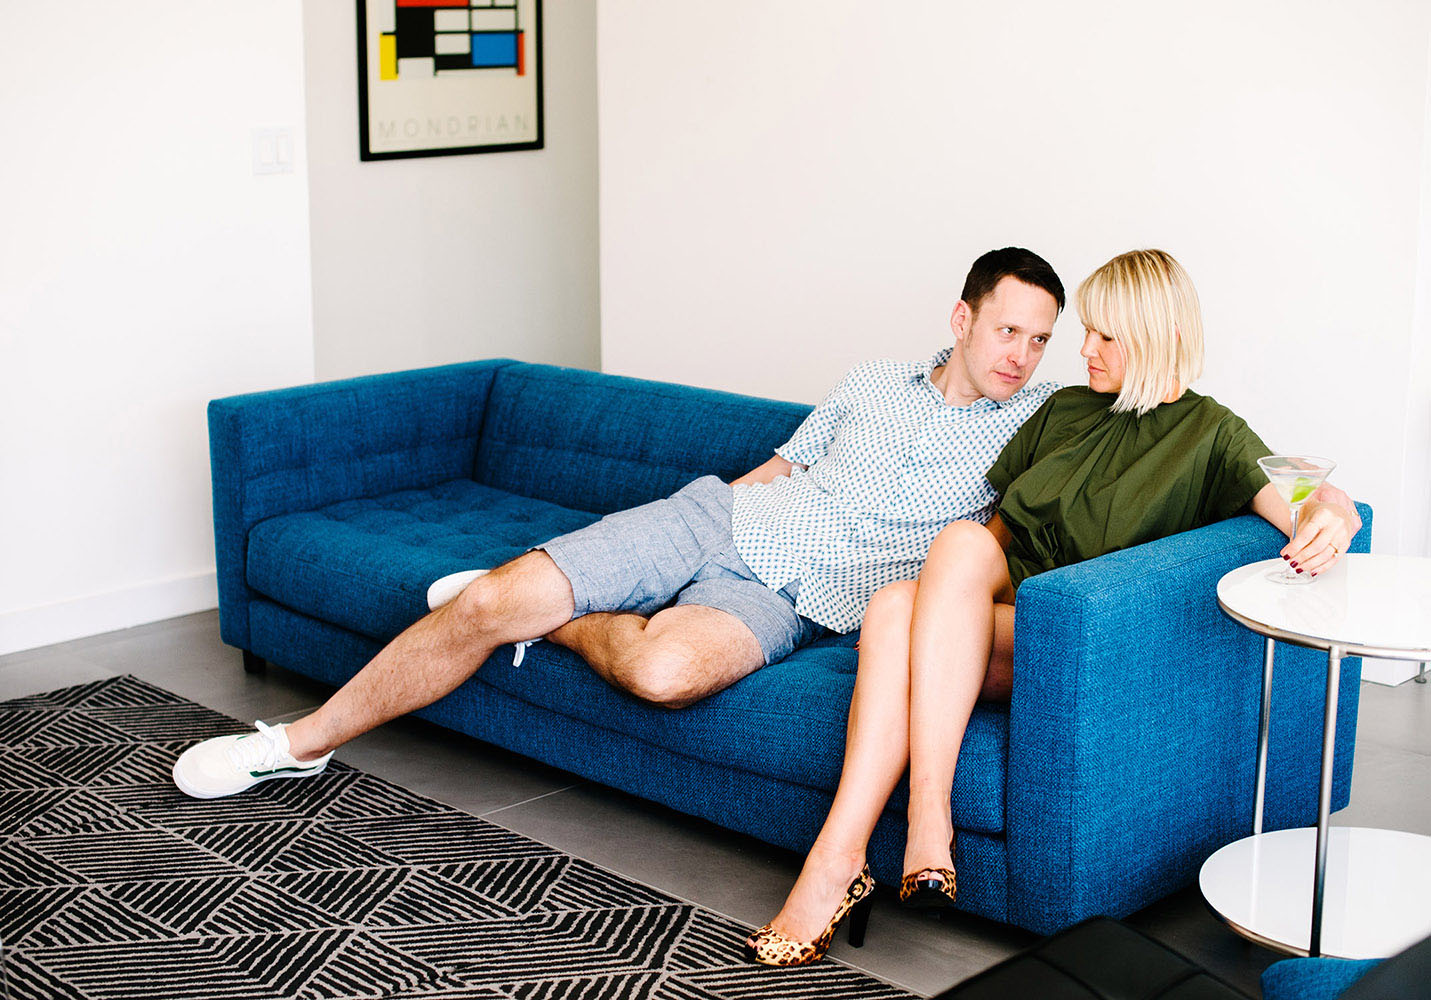 woman in green jumper with leopard print heels with martini on blue couch with guy in white shirt with blue dots and blue shorts and Mondrian print mid century modern furniture